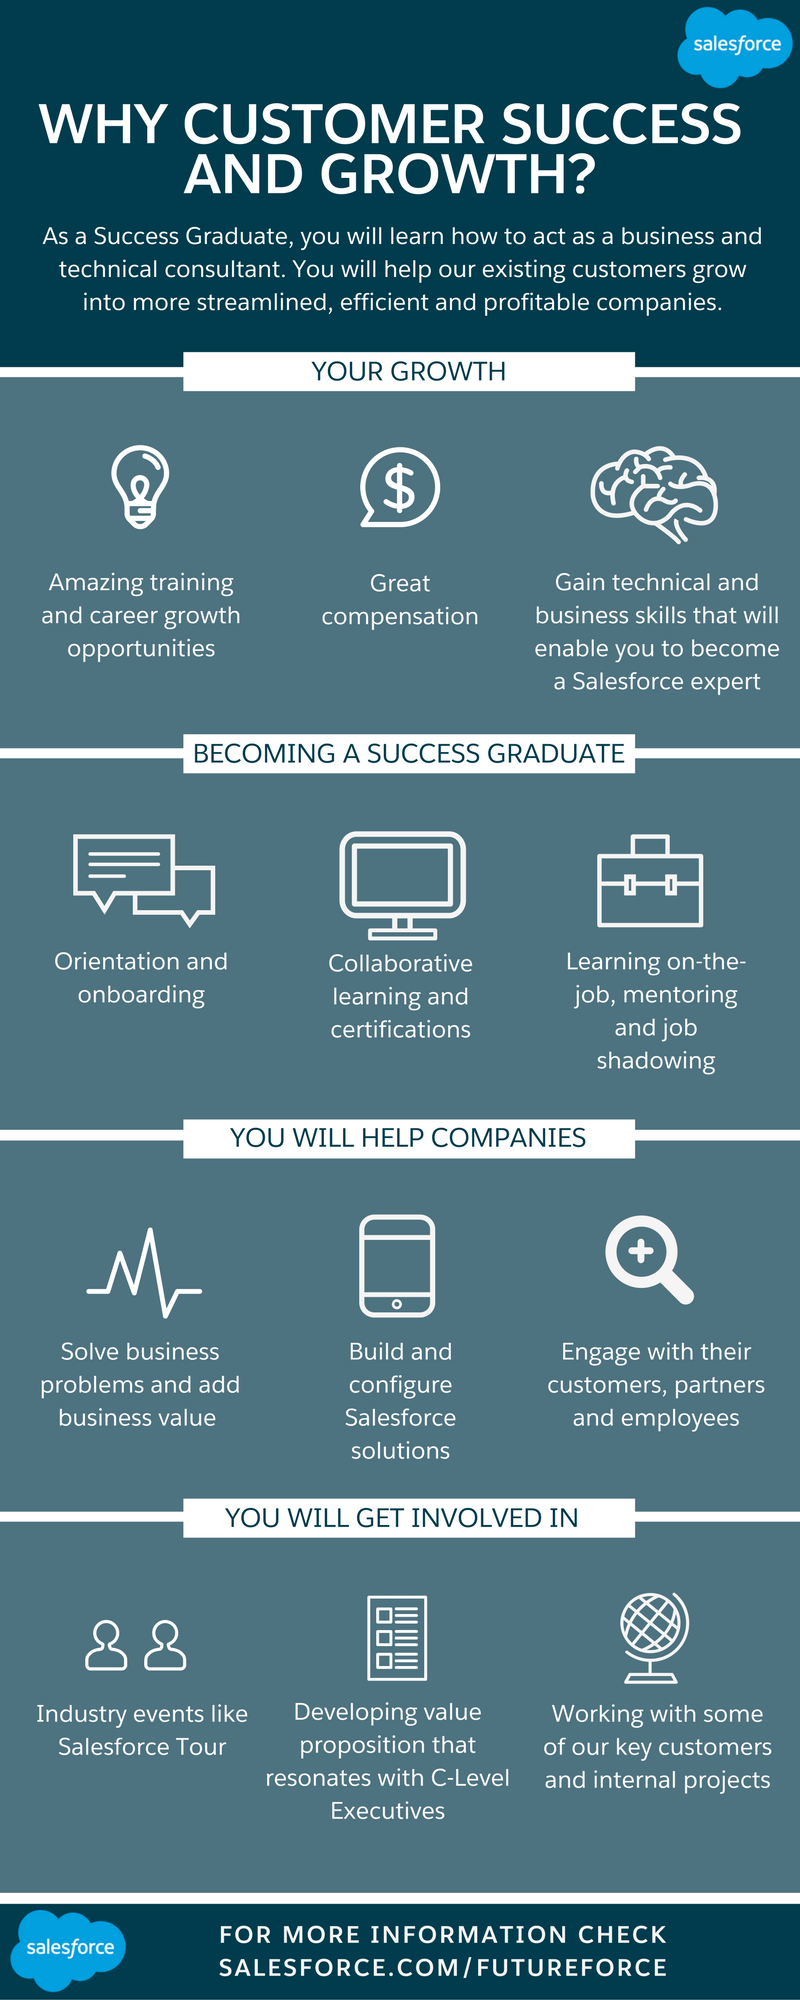 4 Tips to Getting Hired as a Salesforce Success Graduate